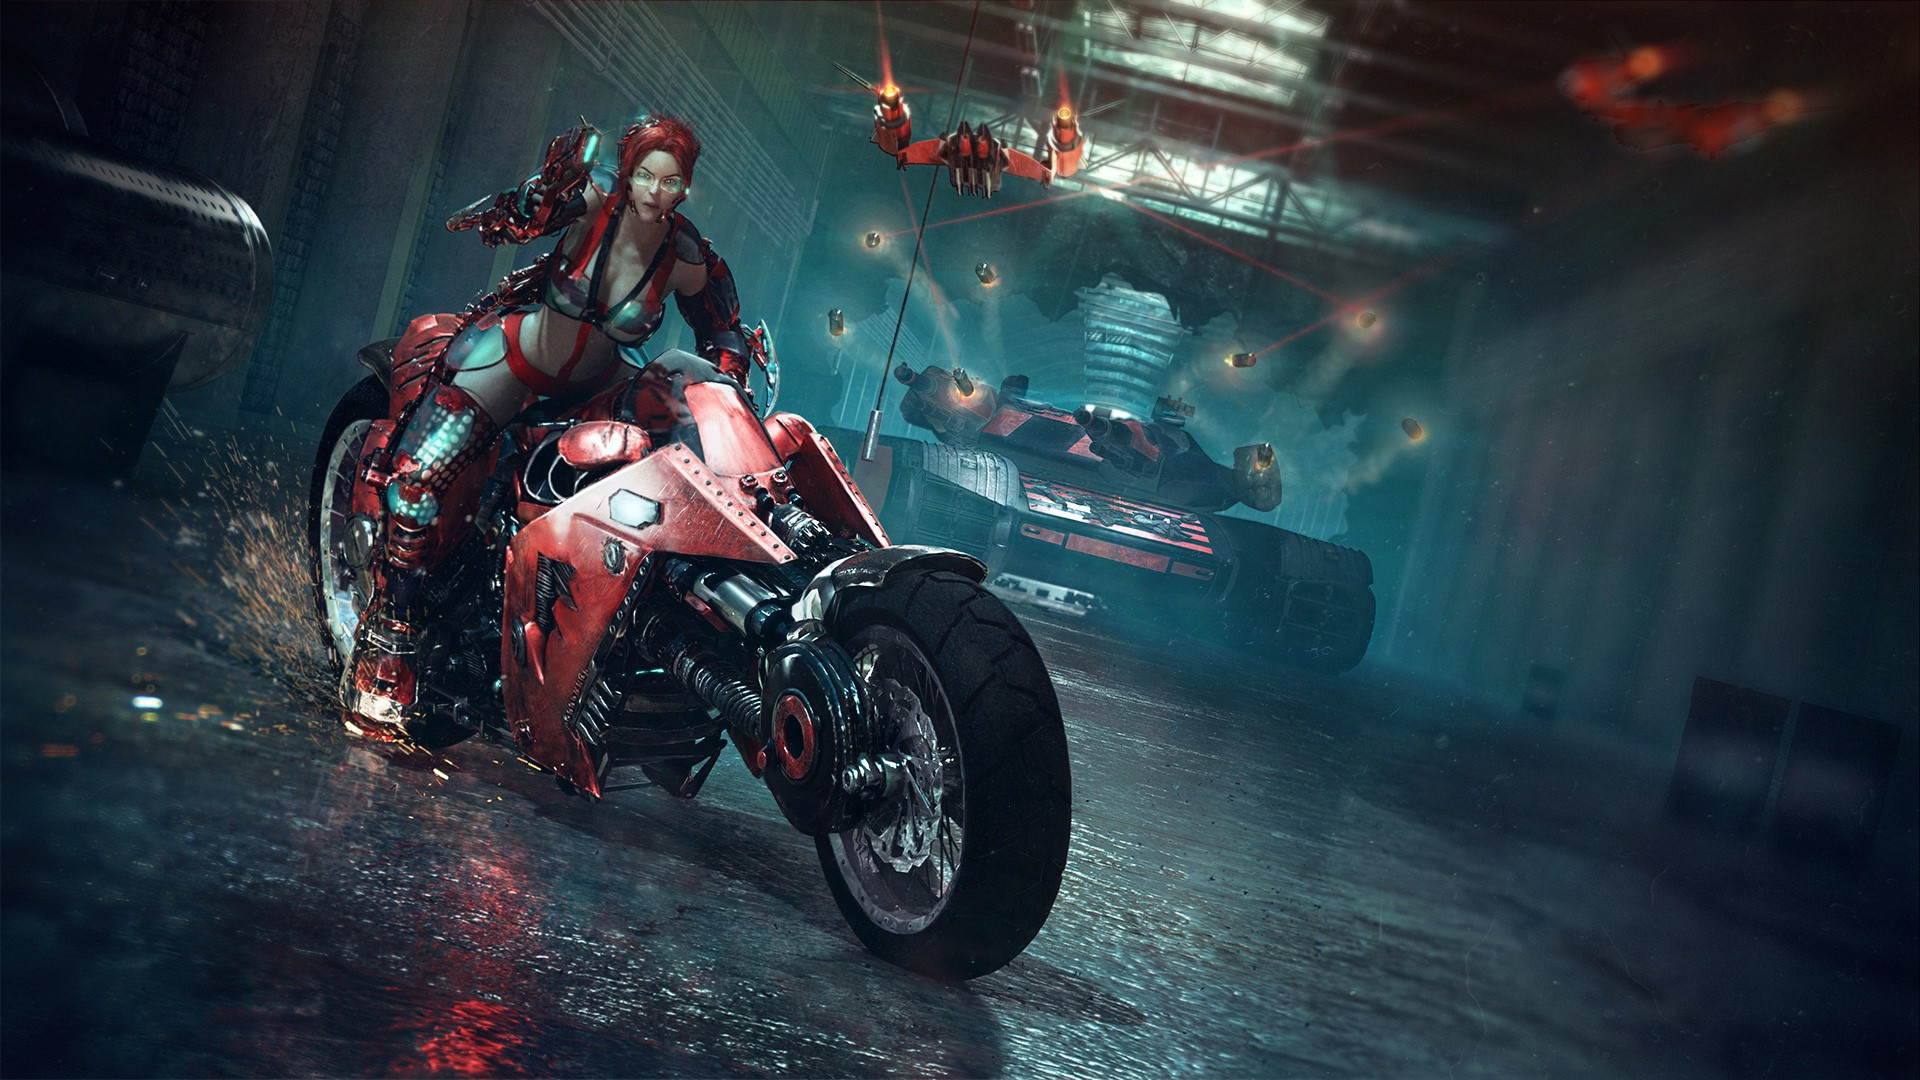 Bikers Quotes Wallpapers Cyberpunk Wallpapers 54 Wallpapers Adorable Wallpapers